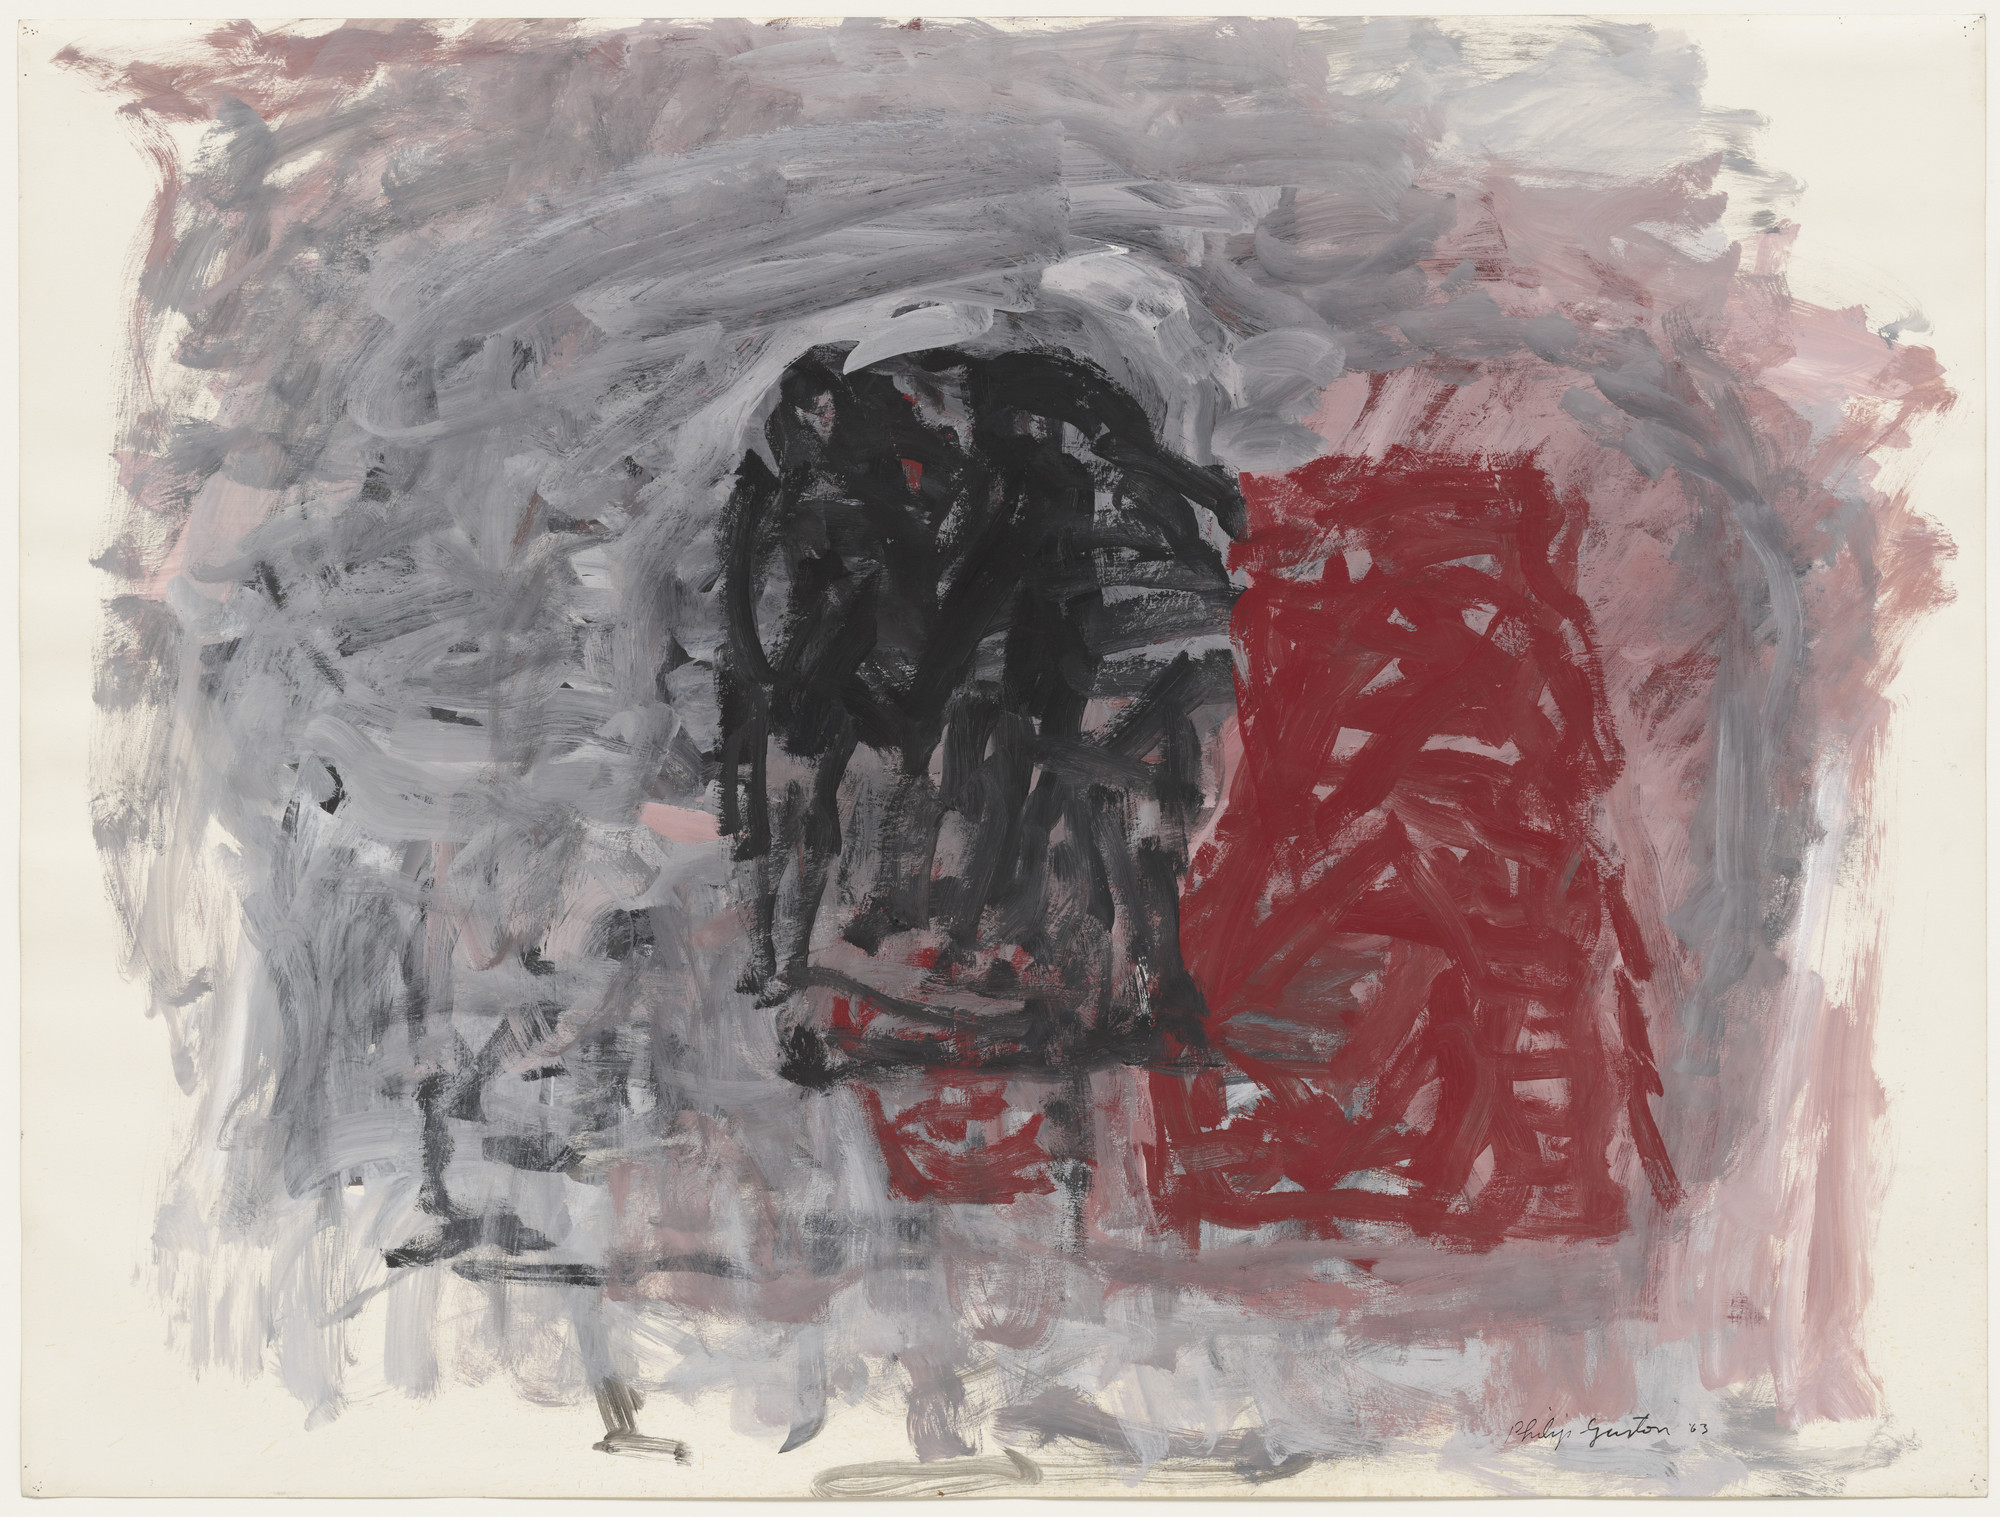 Philip Guston. Untitled. 1963